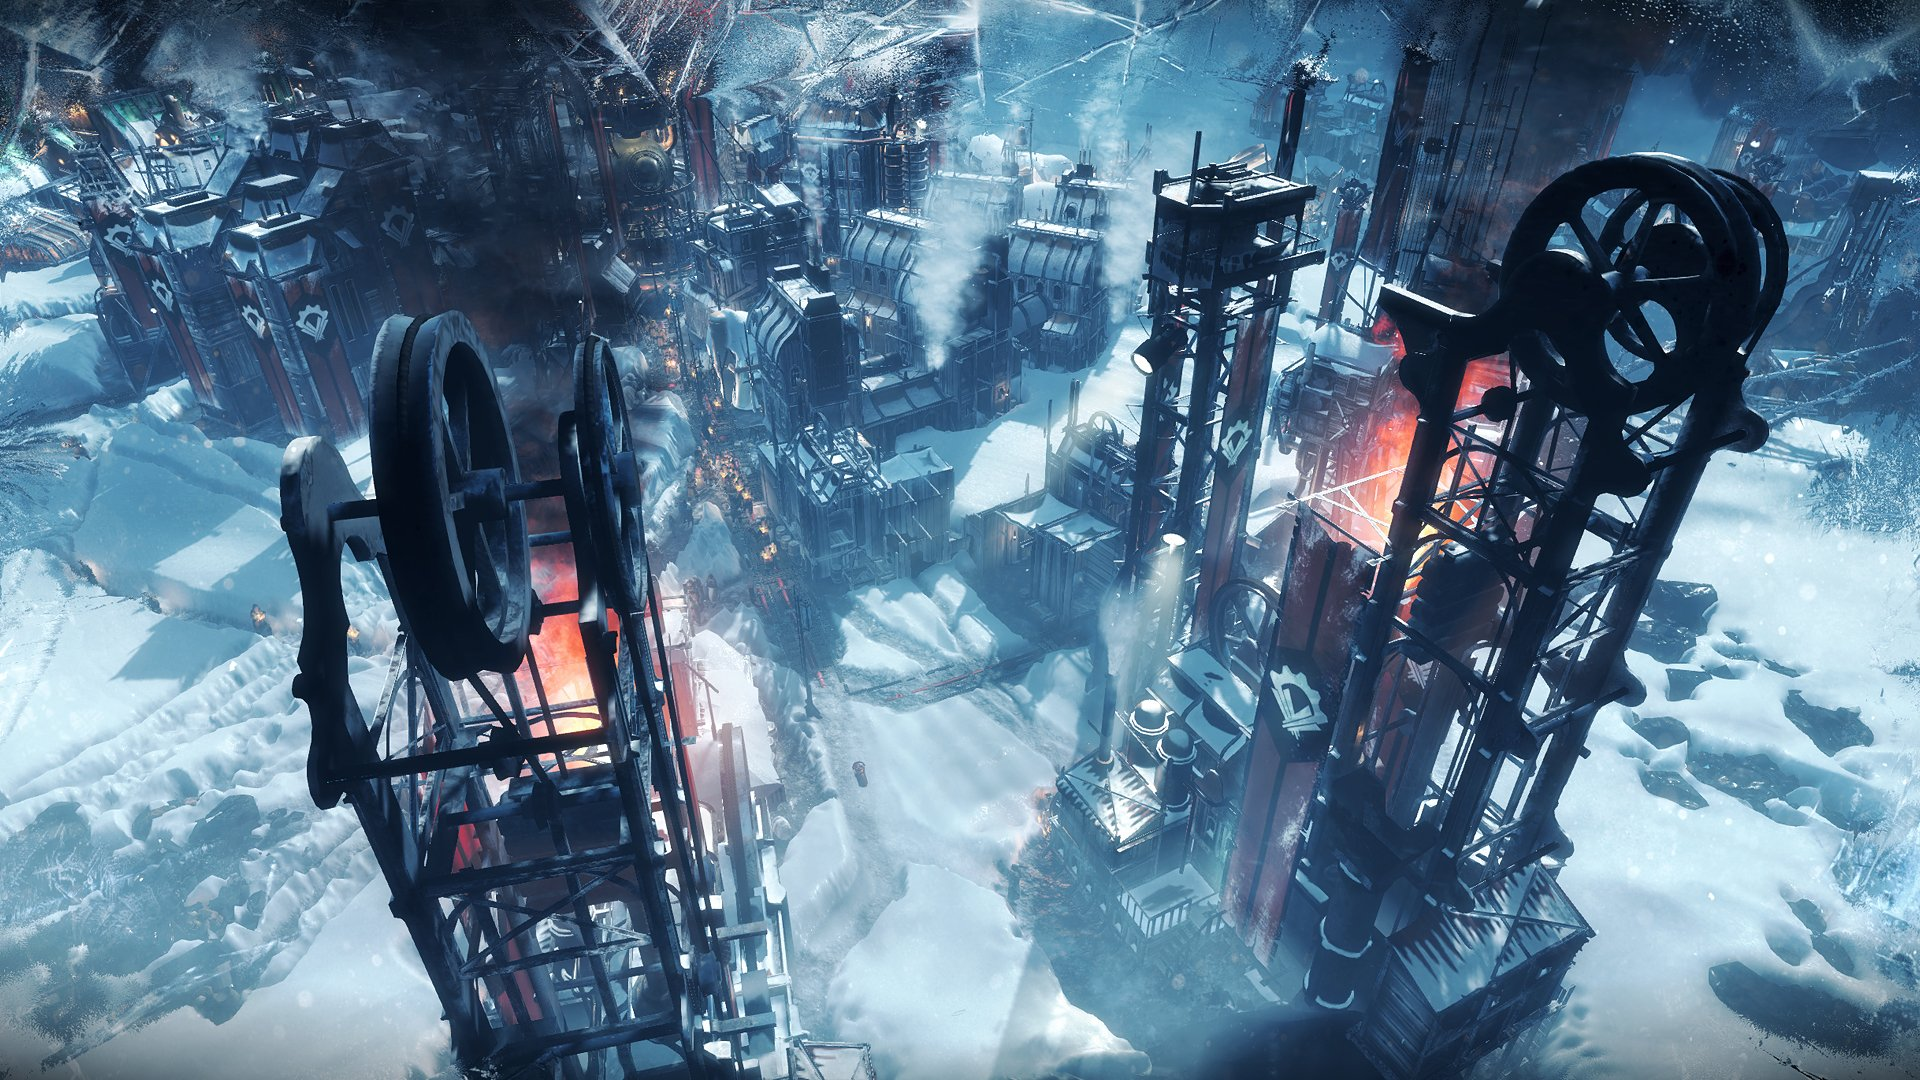 Cool stuff: Frostpunk has a whole lot of free DLC planned screenshot